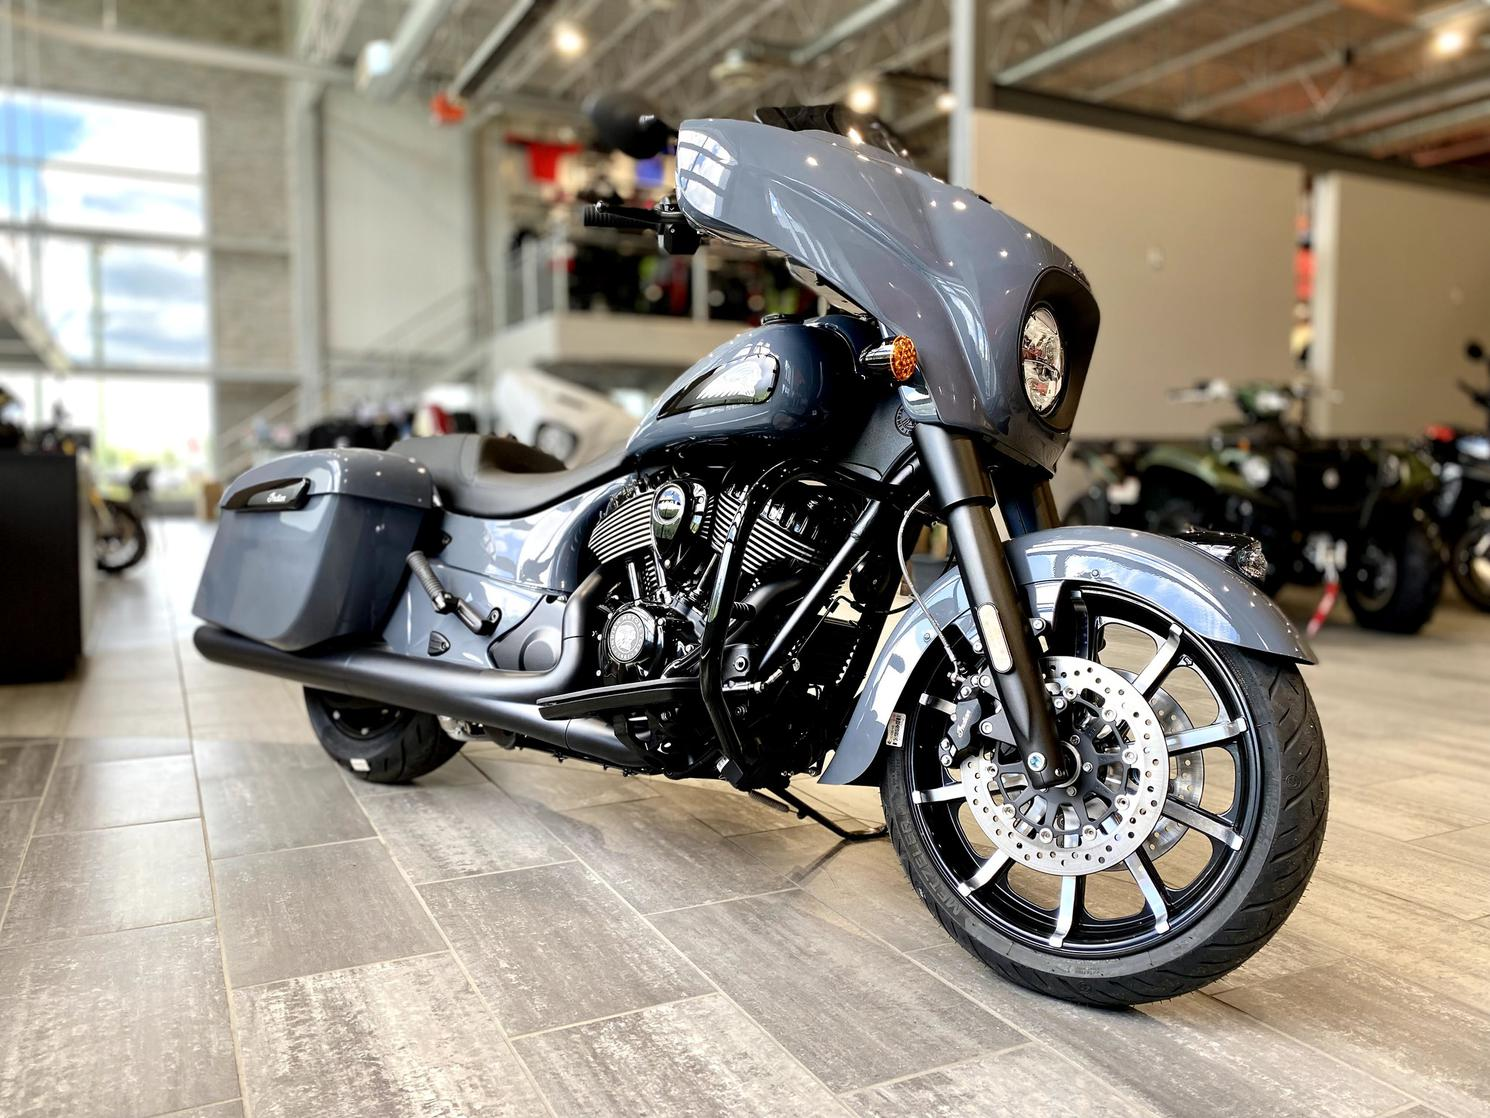 Indian Motorcycle CHIEFTAIN DARK HORSE ICON SERIES 2021